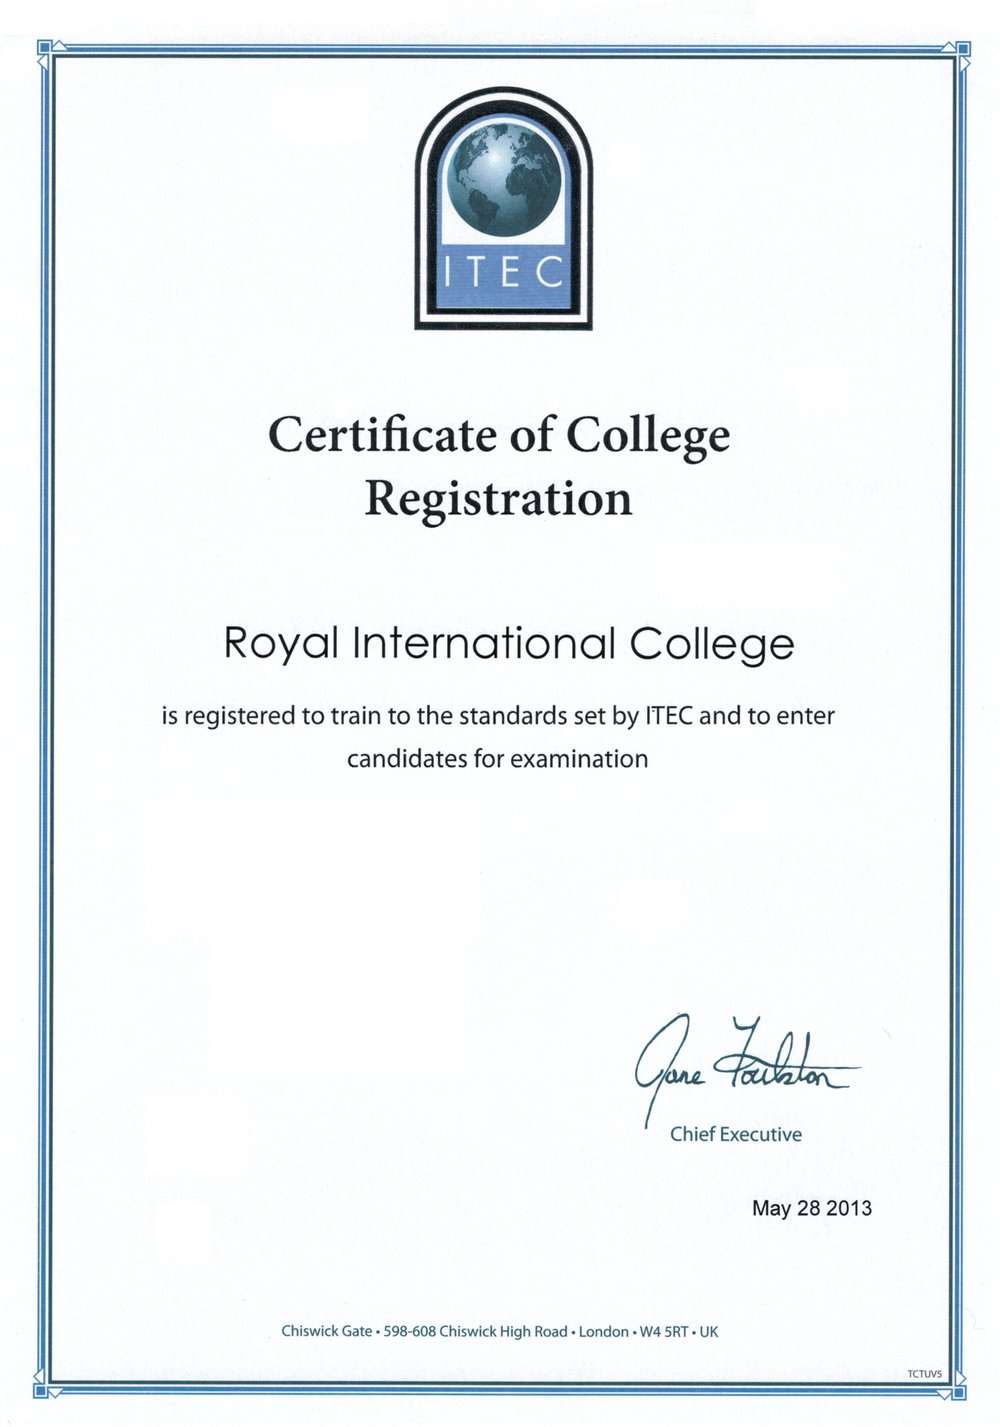 ITEC-Royal.jpg